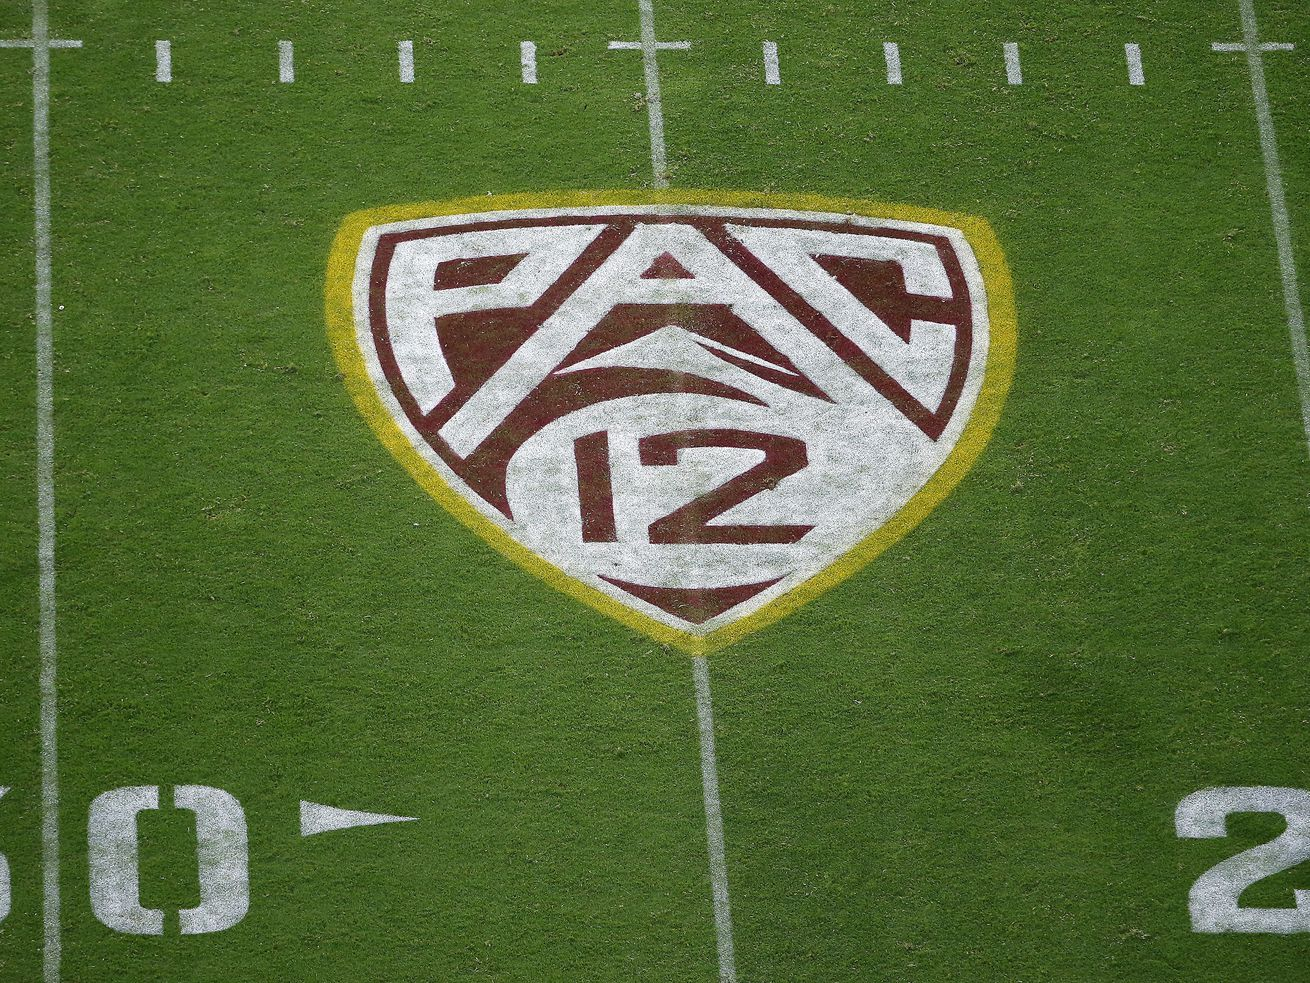 The Pac-12 does not have approval from officials in California and Oregon to play football this fall.